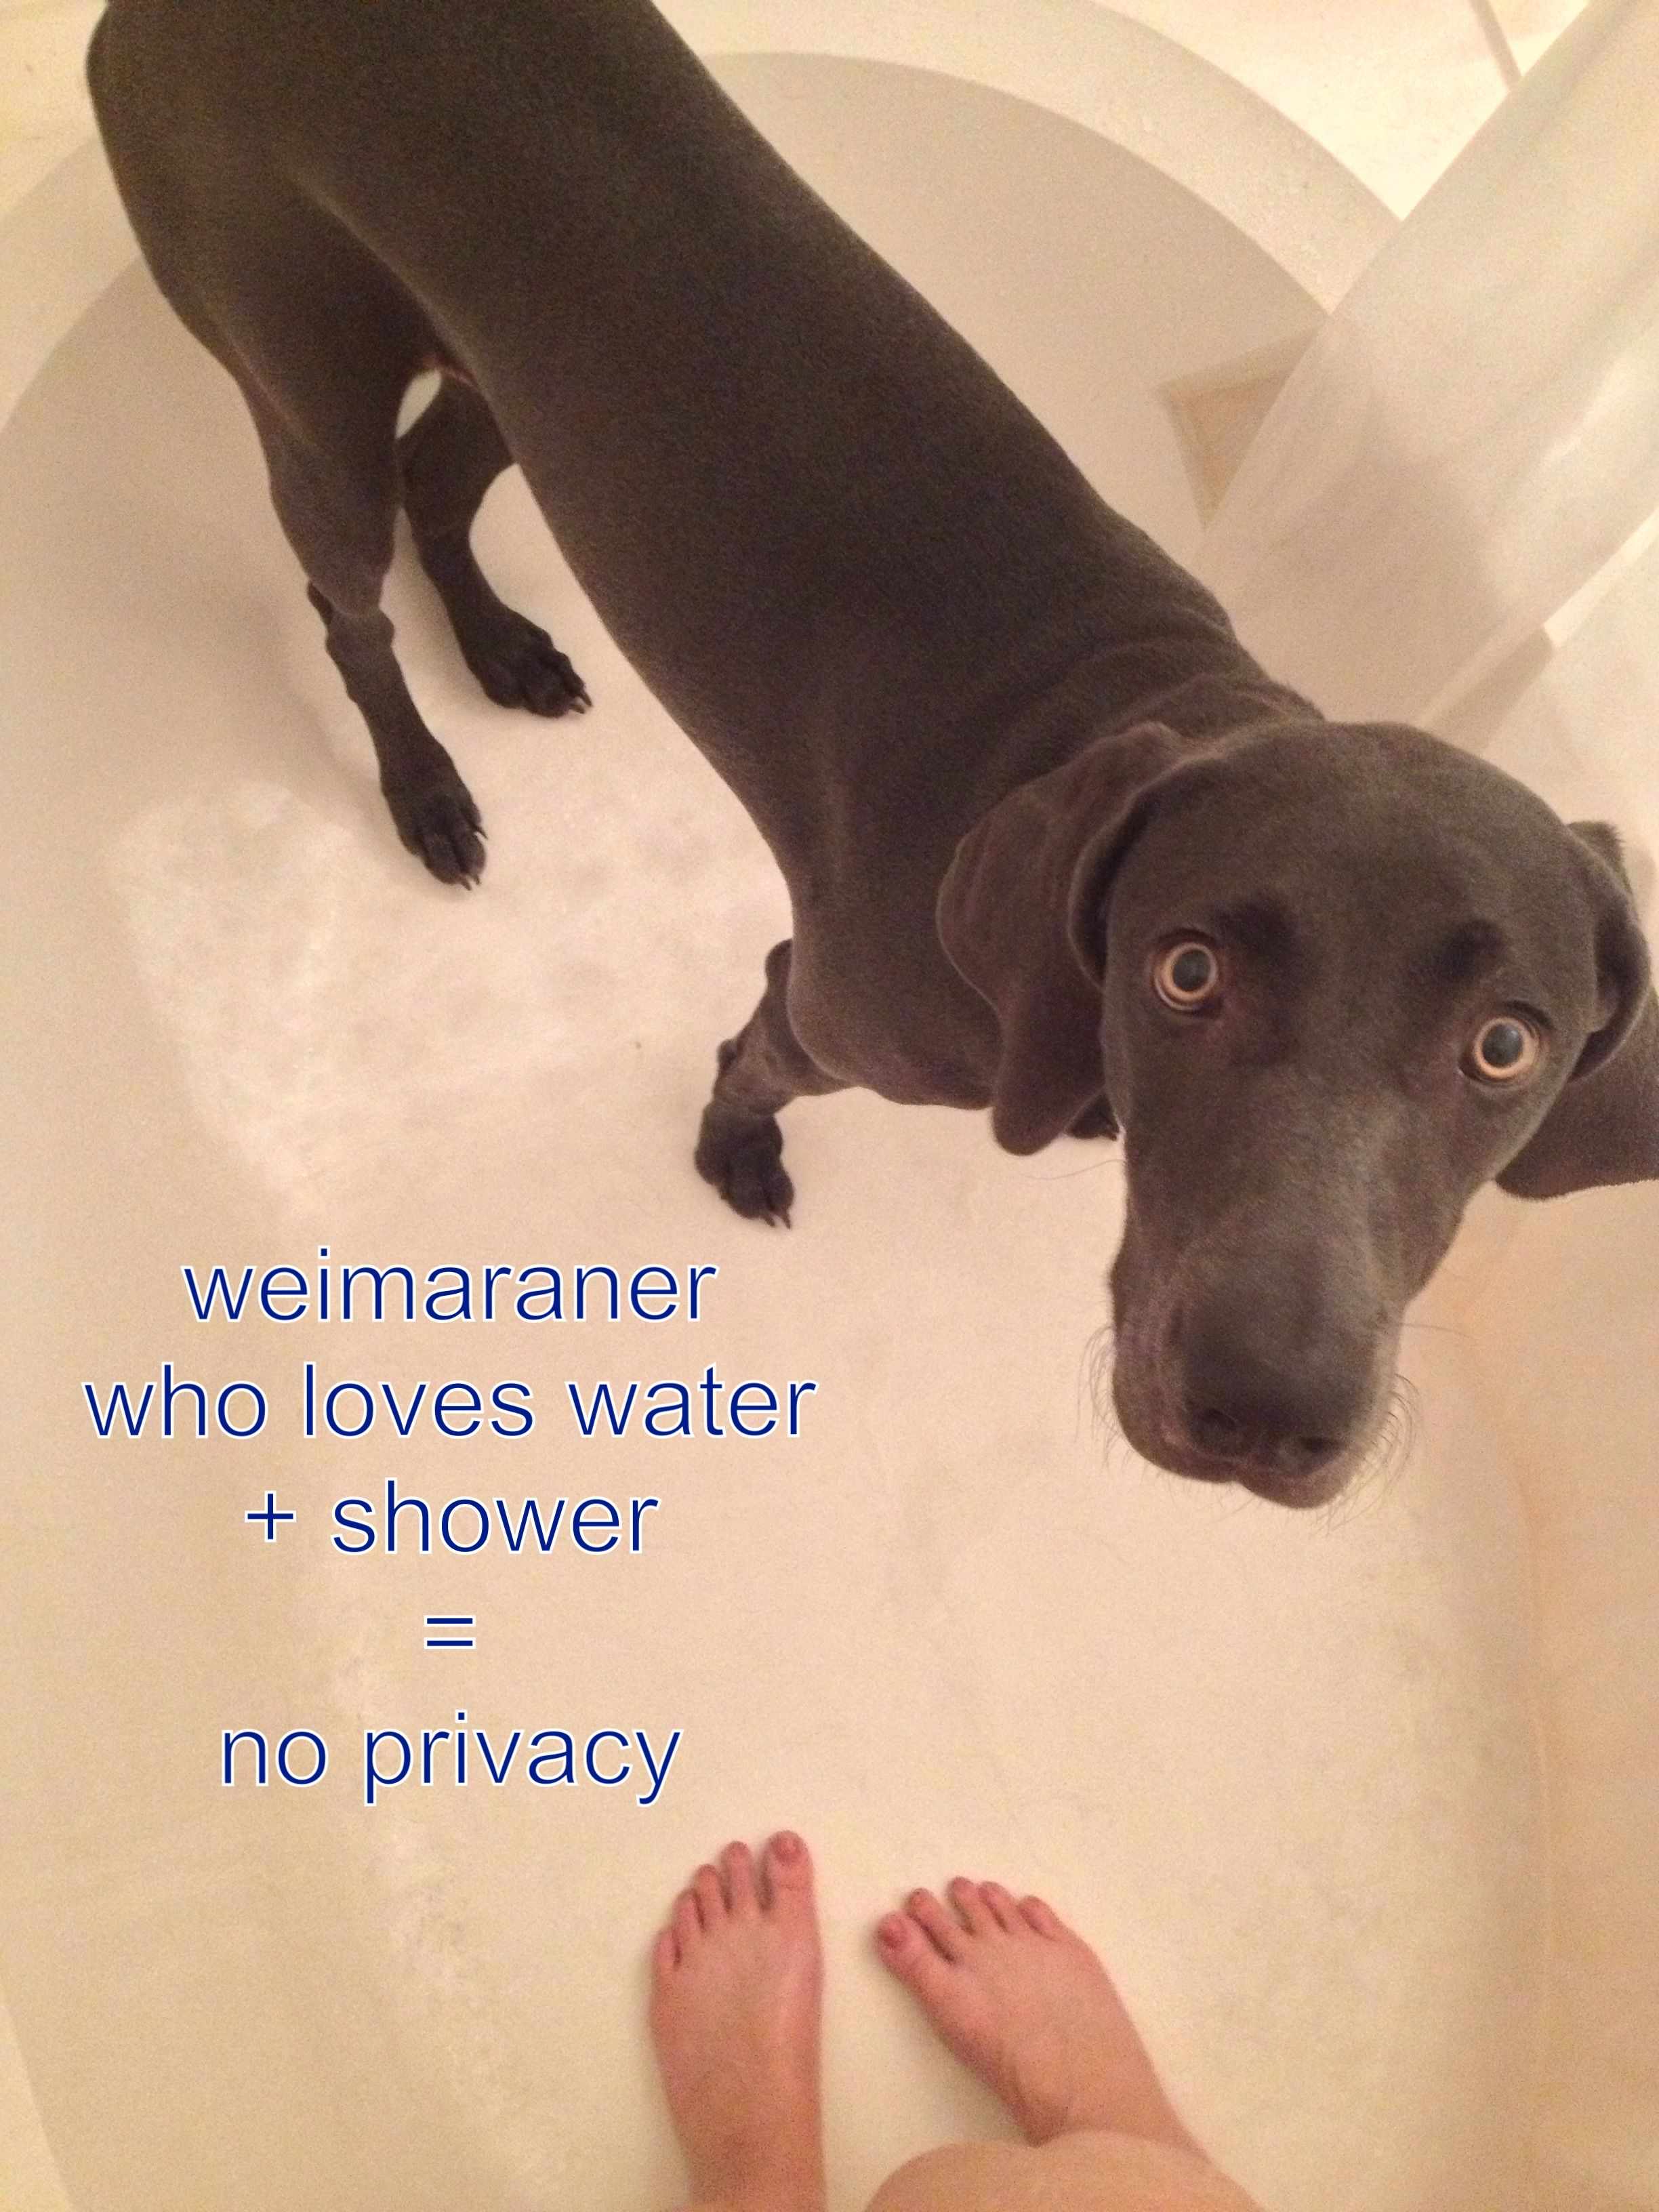 Weimaraner Problems Oh My Goodness This Is Hilarious Dixie